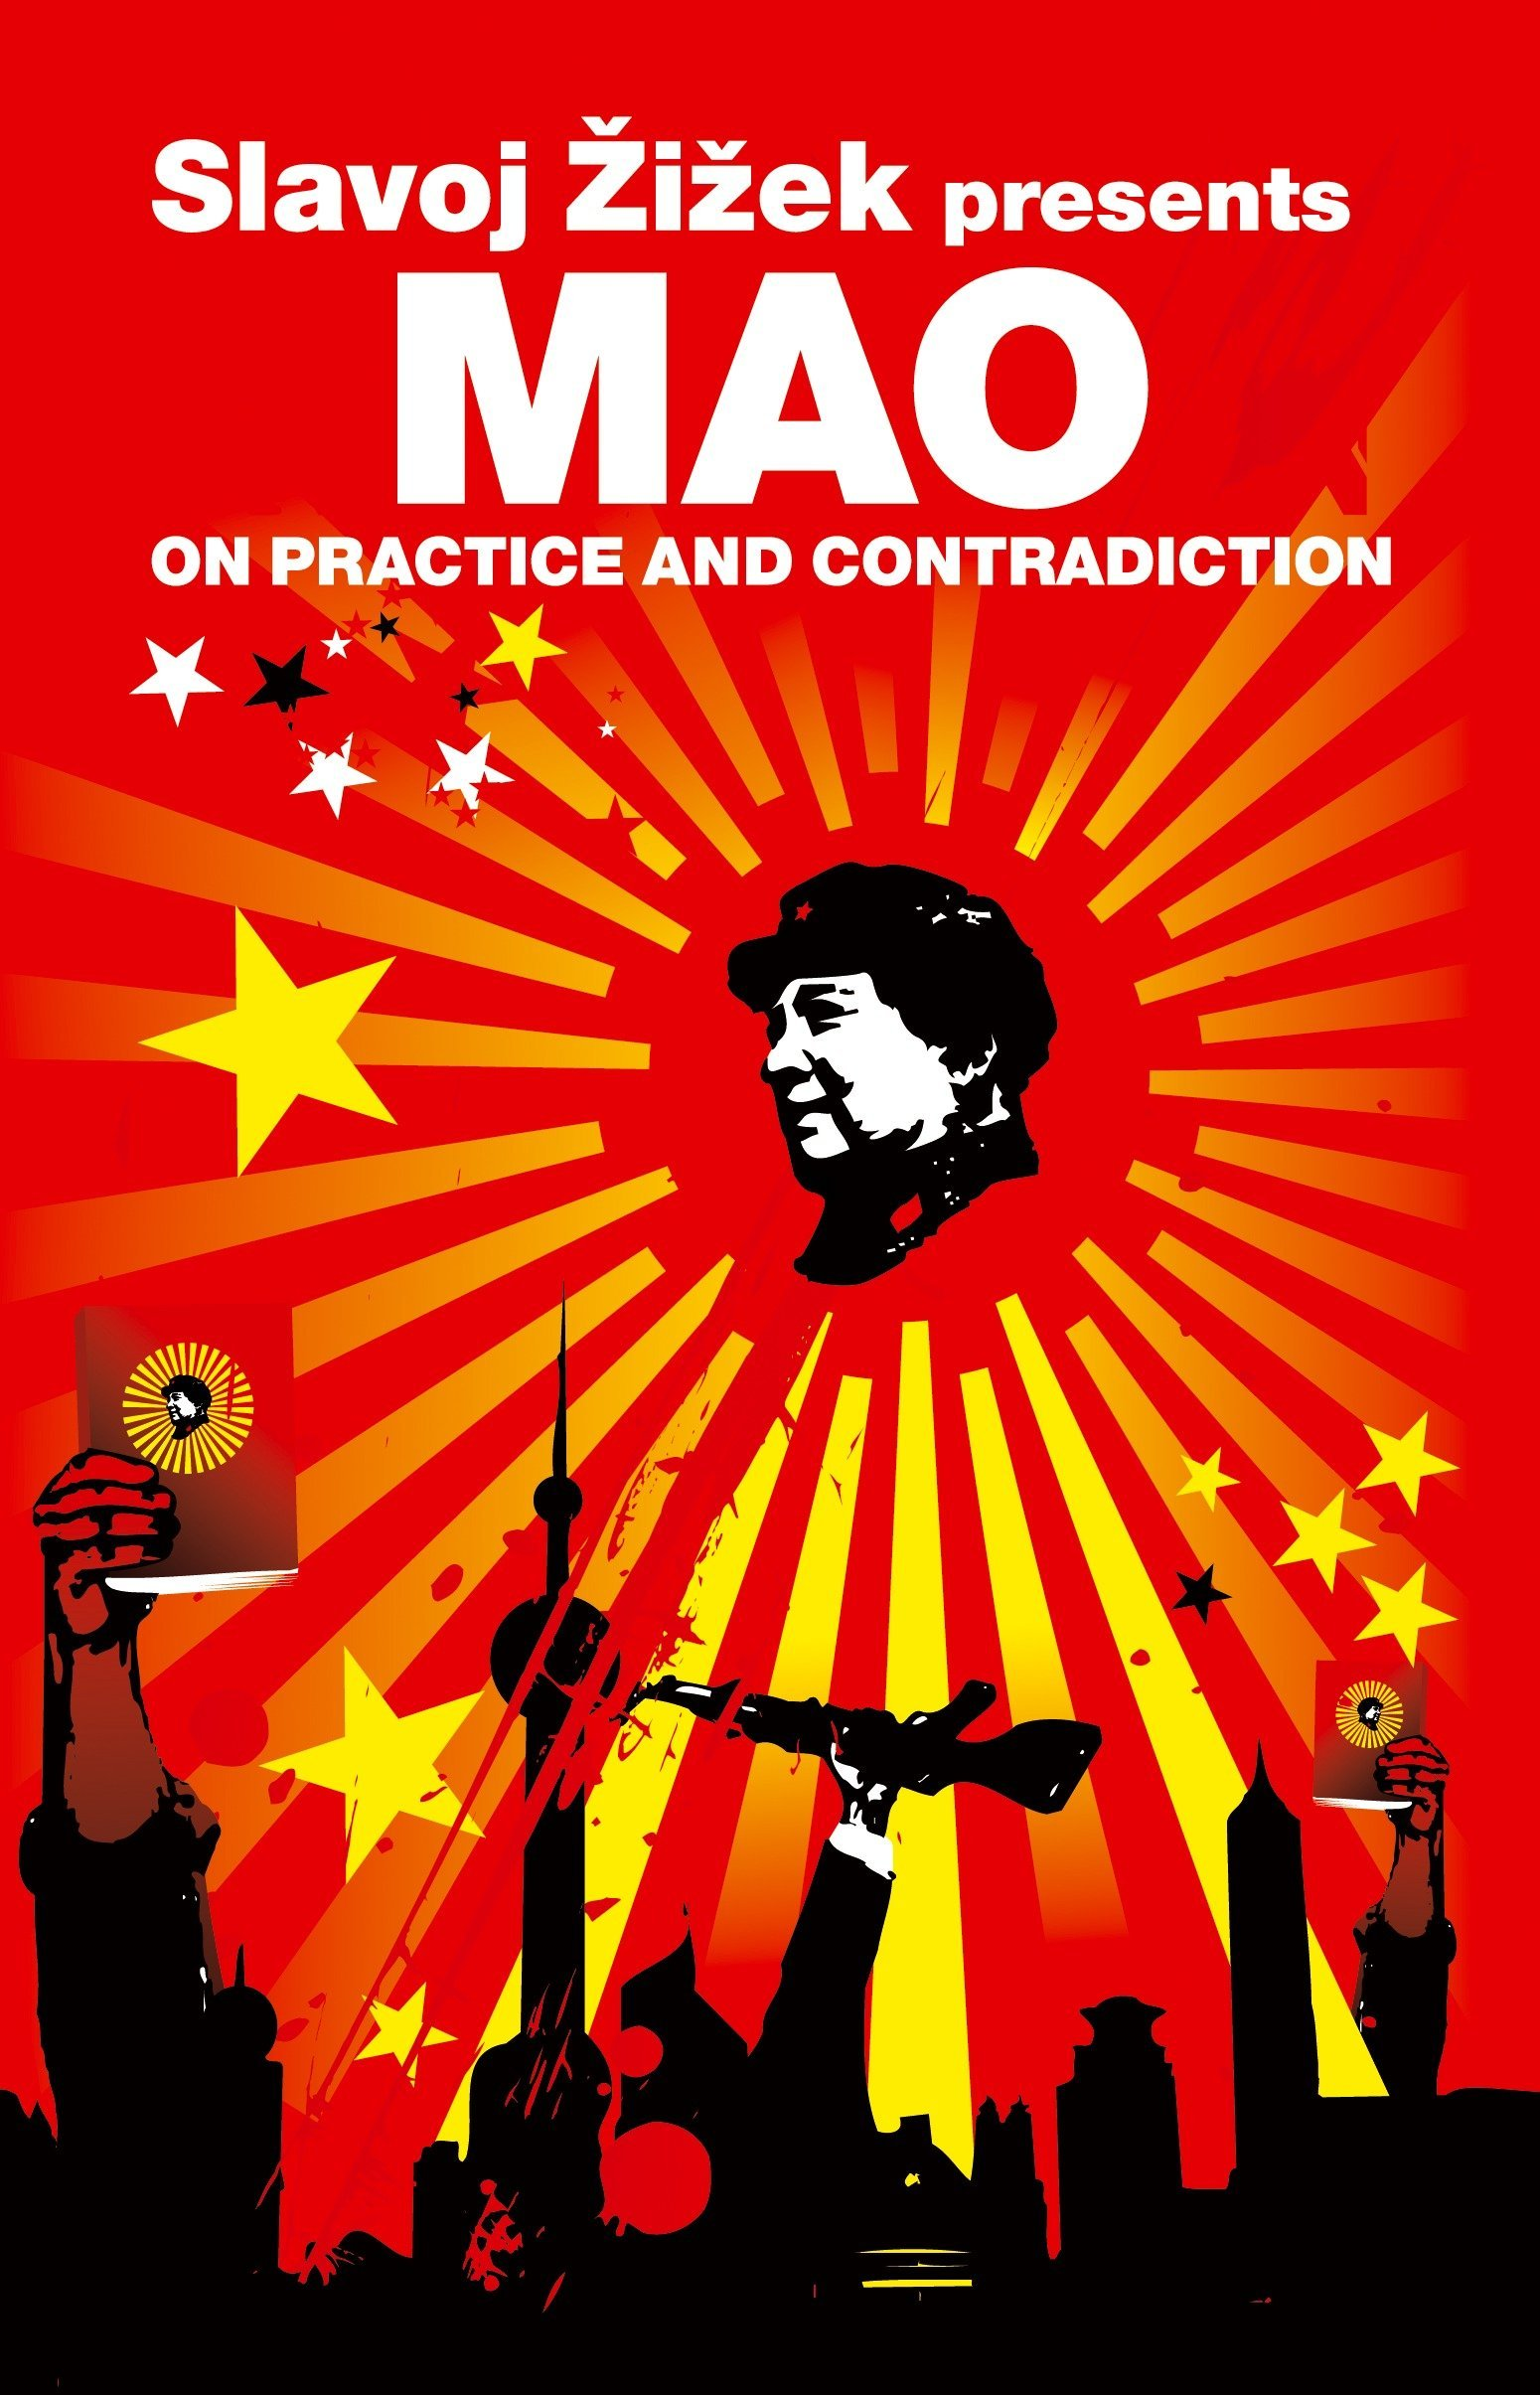 On Practice And Contradiction Revolutions Mao Baby Music Cellular Phone Zedong Slavoj Zizek 9781844675876 Books